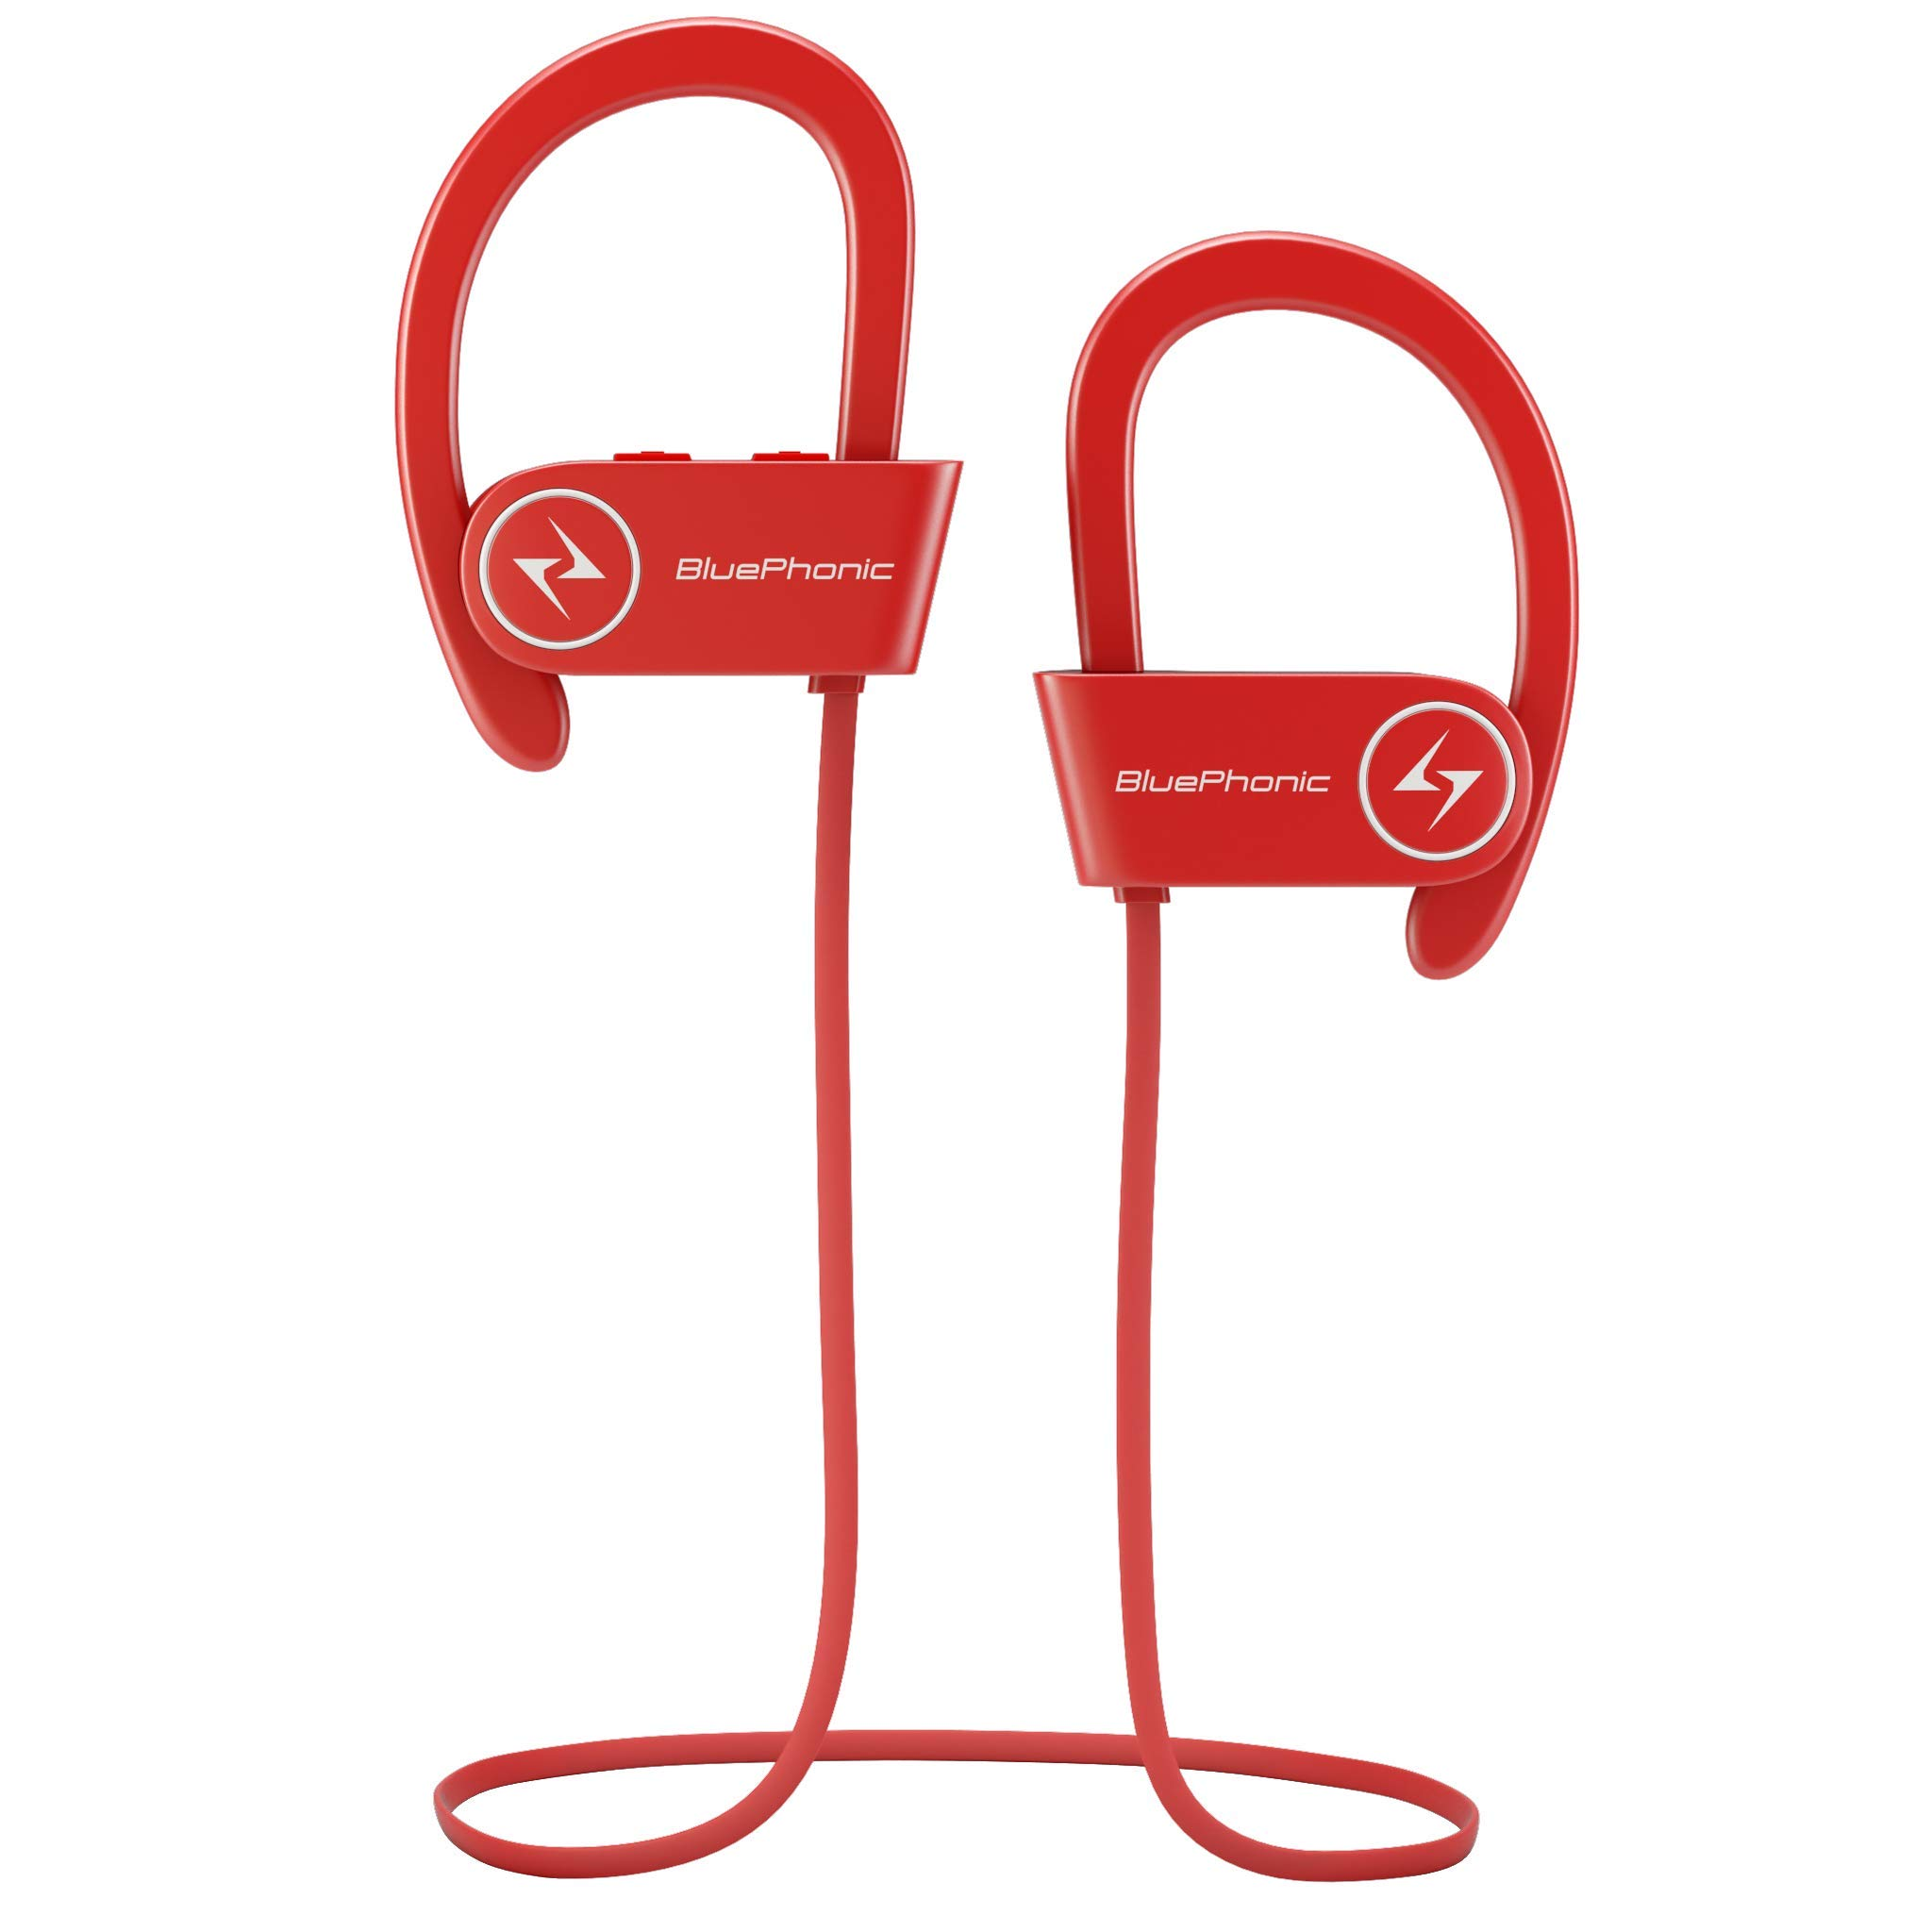 b8a1c39c5c3 ... Sound Quality - Sweat Proof Stable Fit in Ear Workout Earbuds -  Ergonomic Running Earphones - Noise Cancelling Microphone w/Travel Case -  by Bluephonic